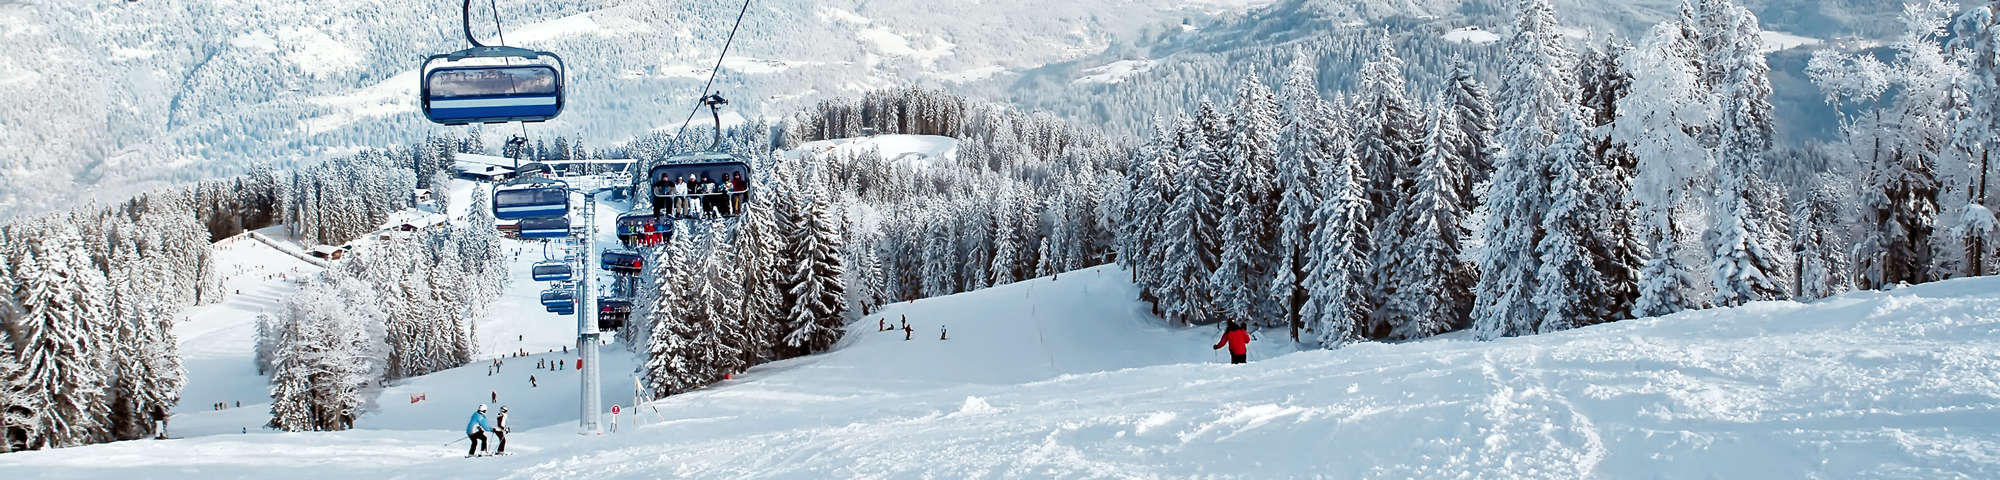 Wintersport Sauerland